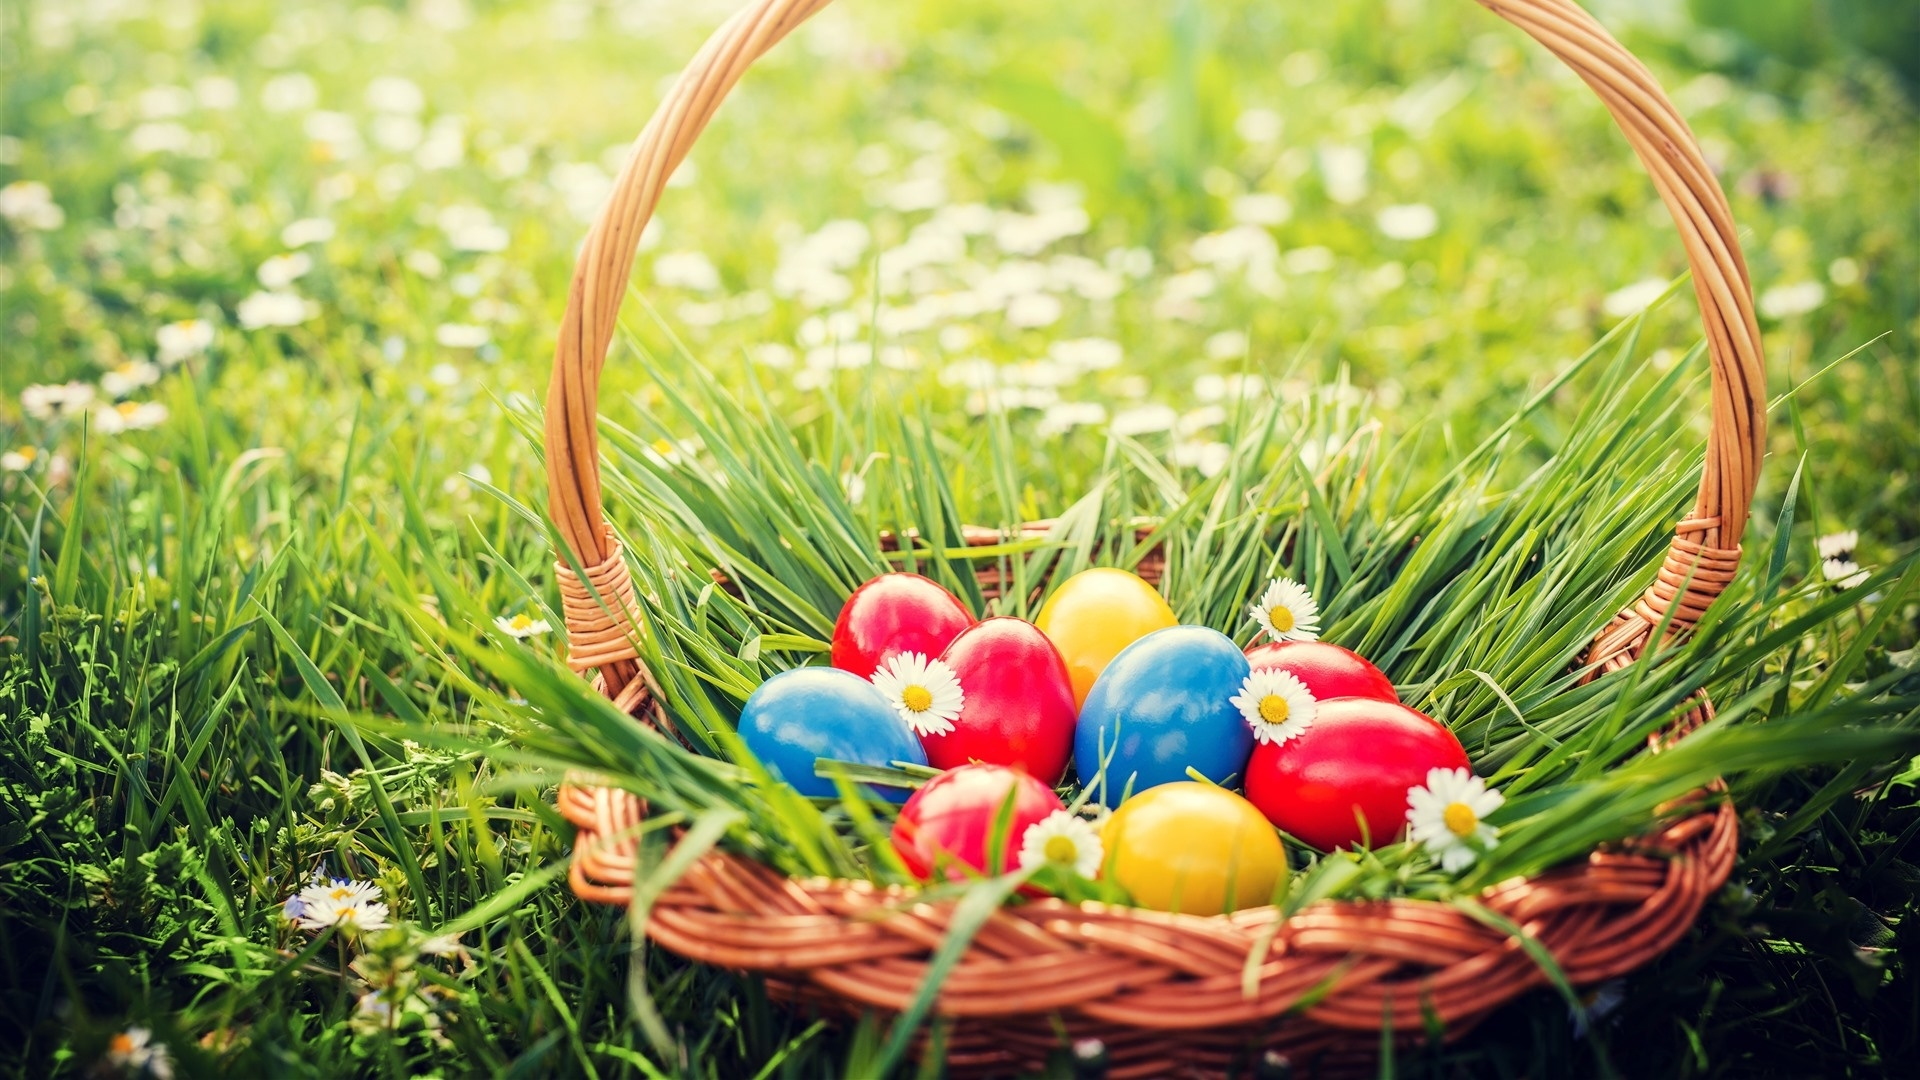 Easter Eggs In A Basket Wallpaper theme